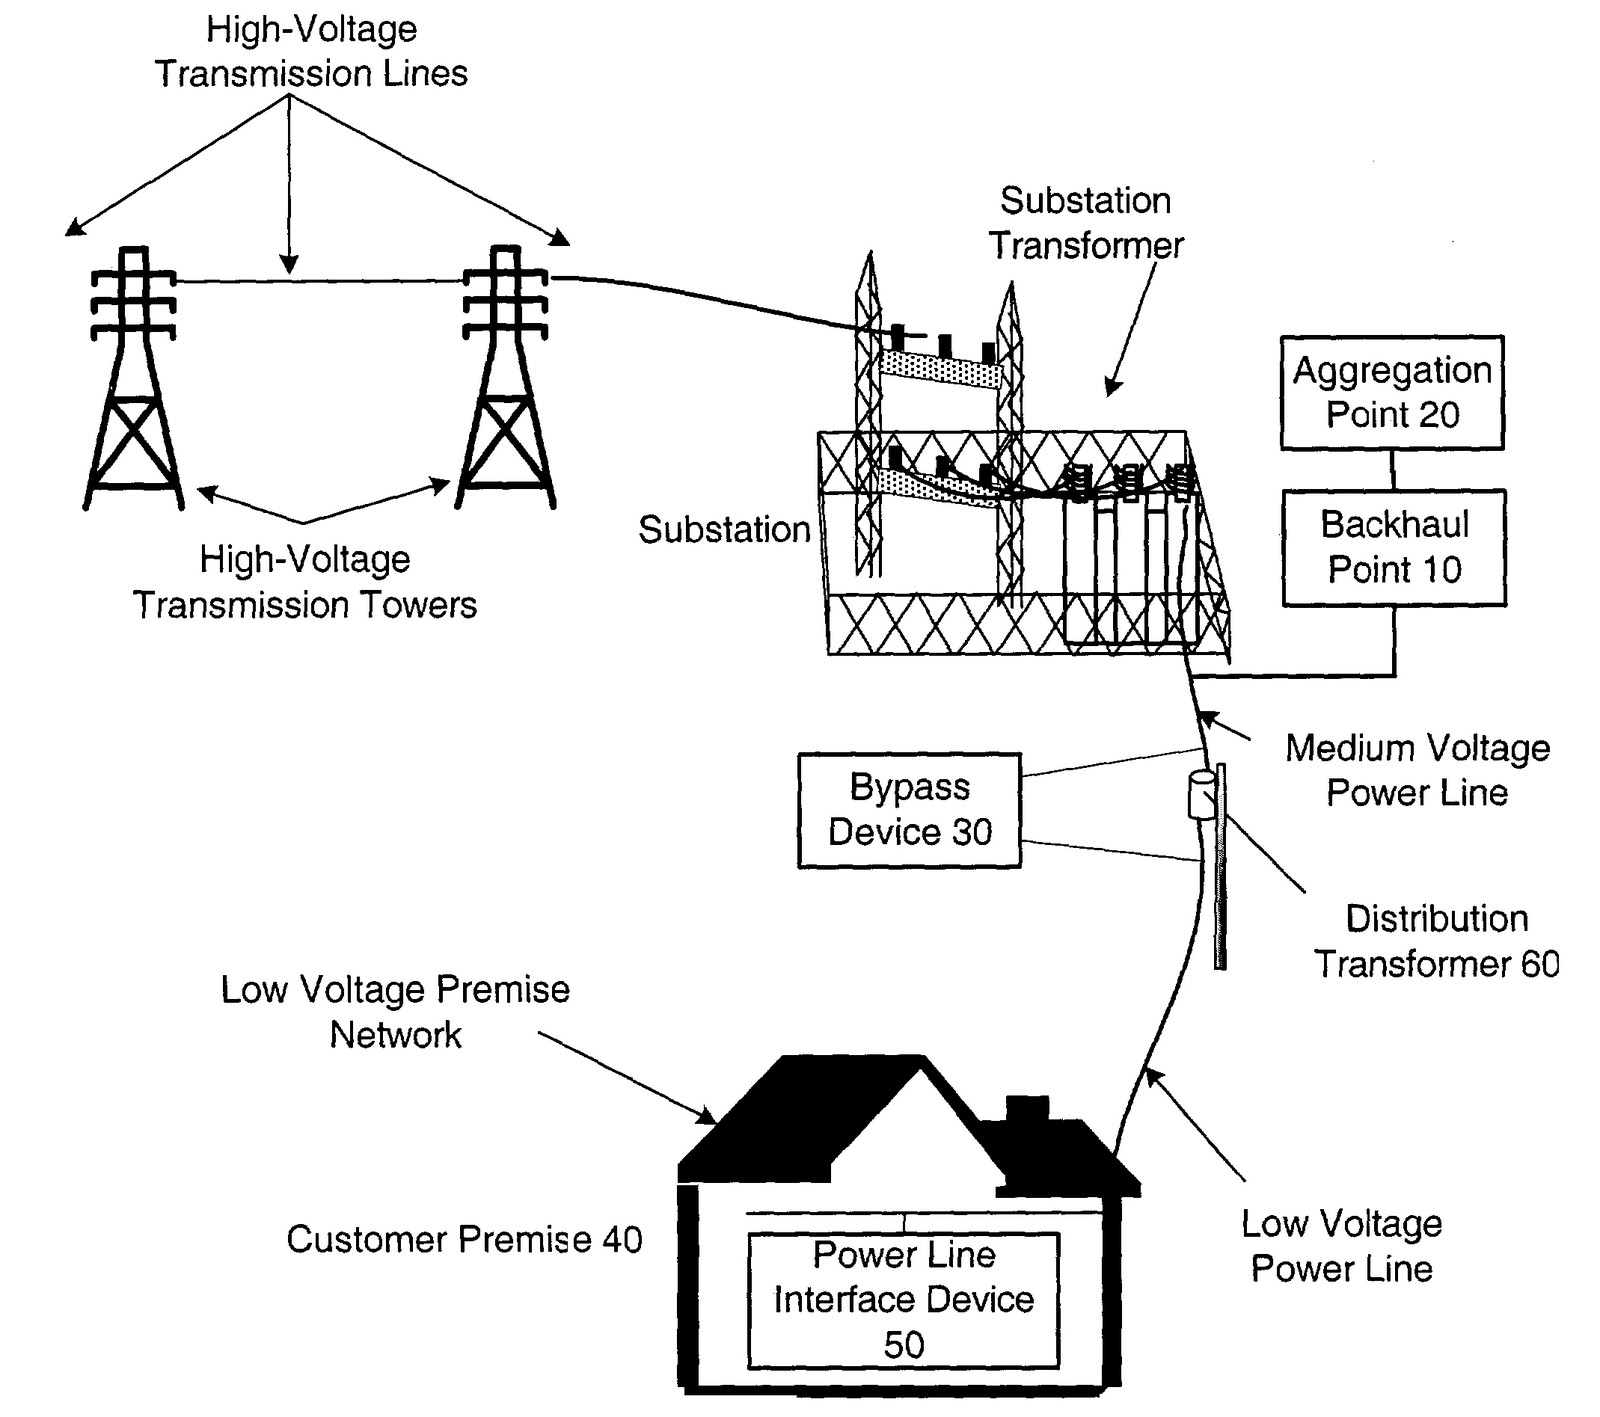 hight resolution of distribution lines practically starts from the low voltage side of a primary distribution substation and ends at the service entrance of the every power